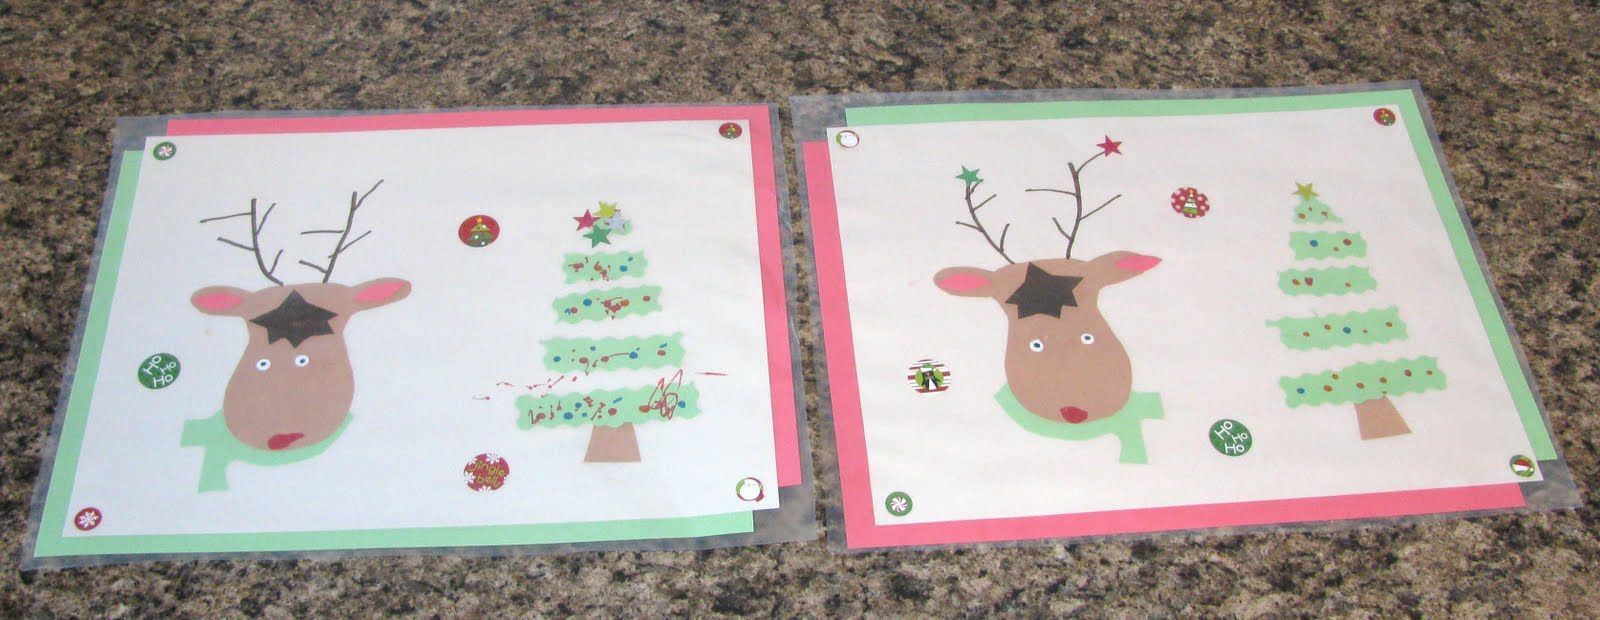 Holiday Placemat Craft With The Kids Christmas Placemats Christmas Crafts For Kids Placemats Kids